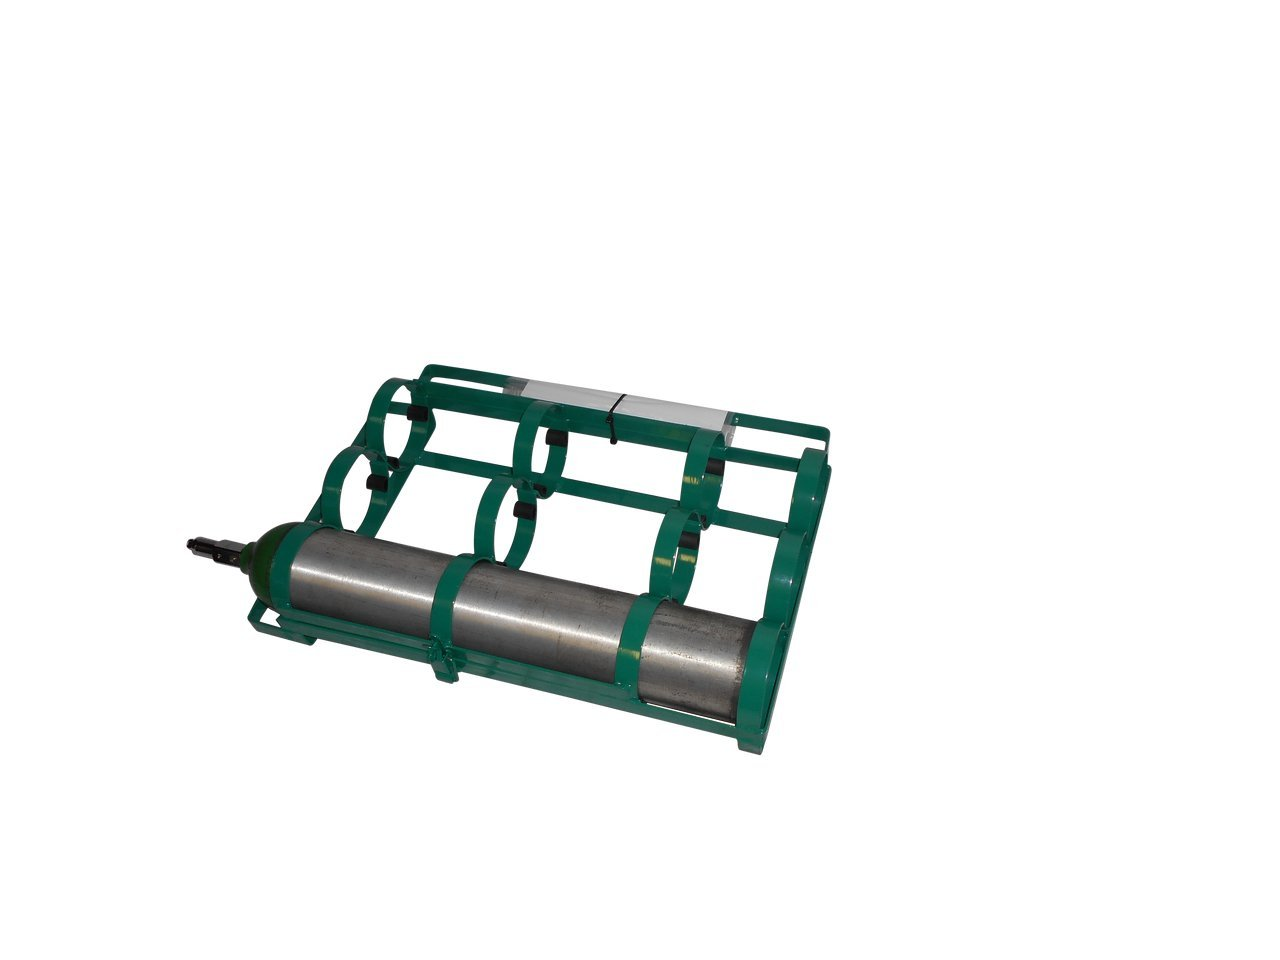 FWF OXYGEN CAR RACK HOLD UP TO 3 (D, E OR C STYLES) CYLINDERS DIAMETER OF 4.3'' MADE IN USA